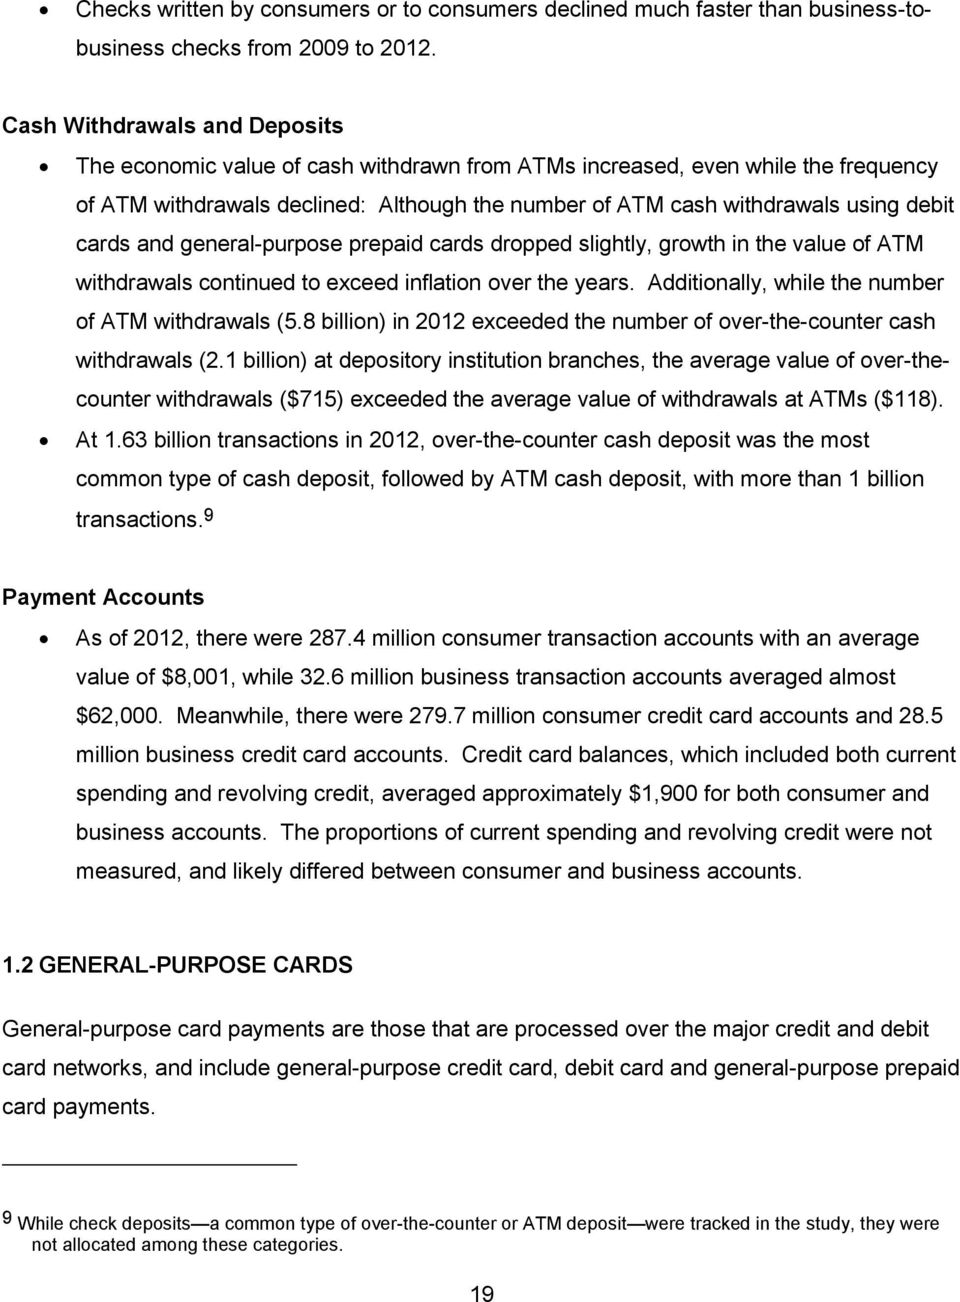 cards and general-purpose prepaid cards dropped slightly, growth in the value of ATM withdrawals continued to exceed inflation over the years. Additionally, while the number of ATM withdrawals (5.